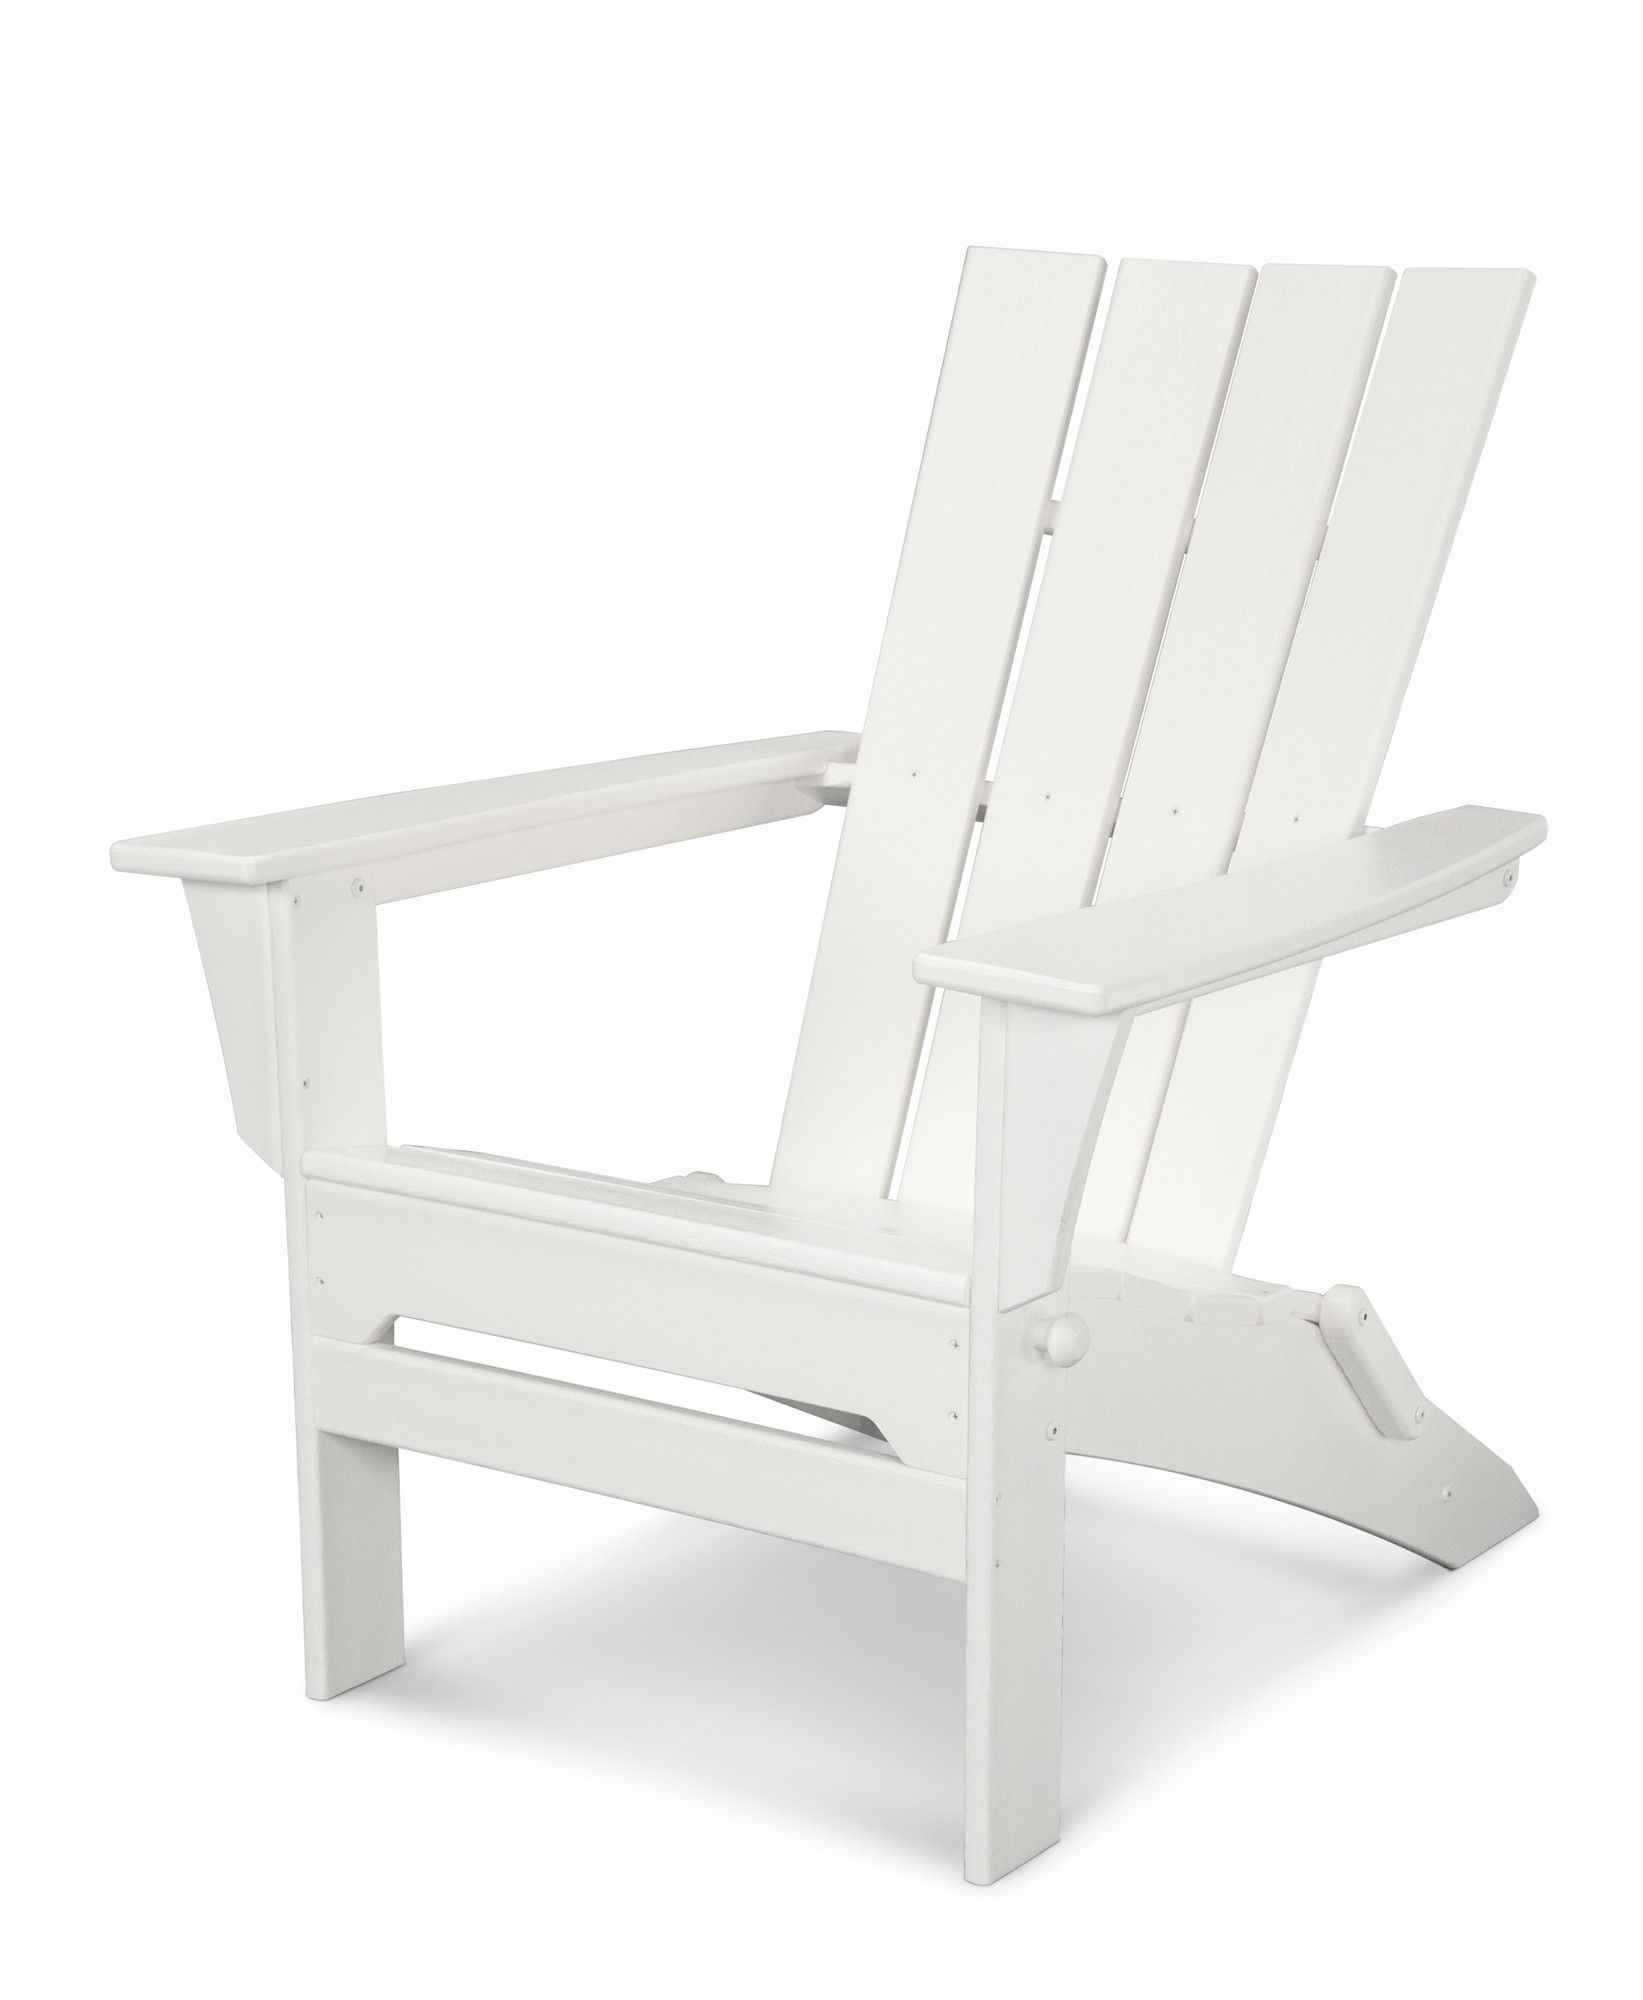 Quattro Recycled Plastic Folding Adirondack Chair Resin